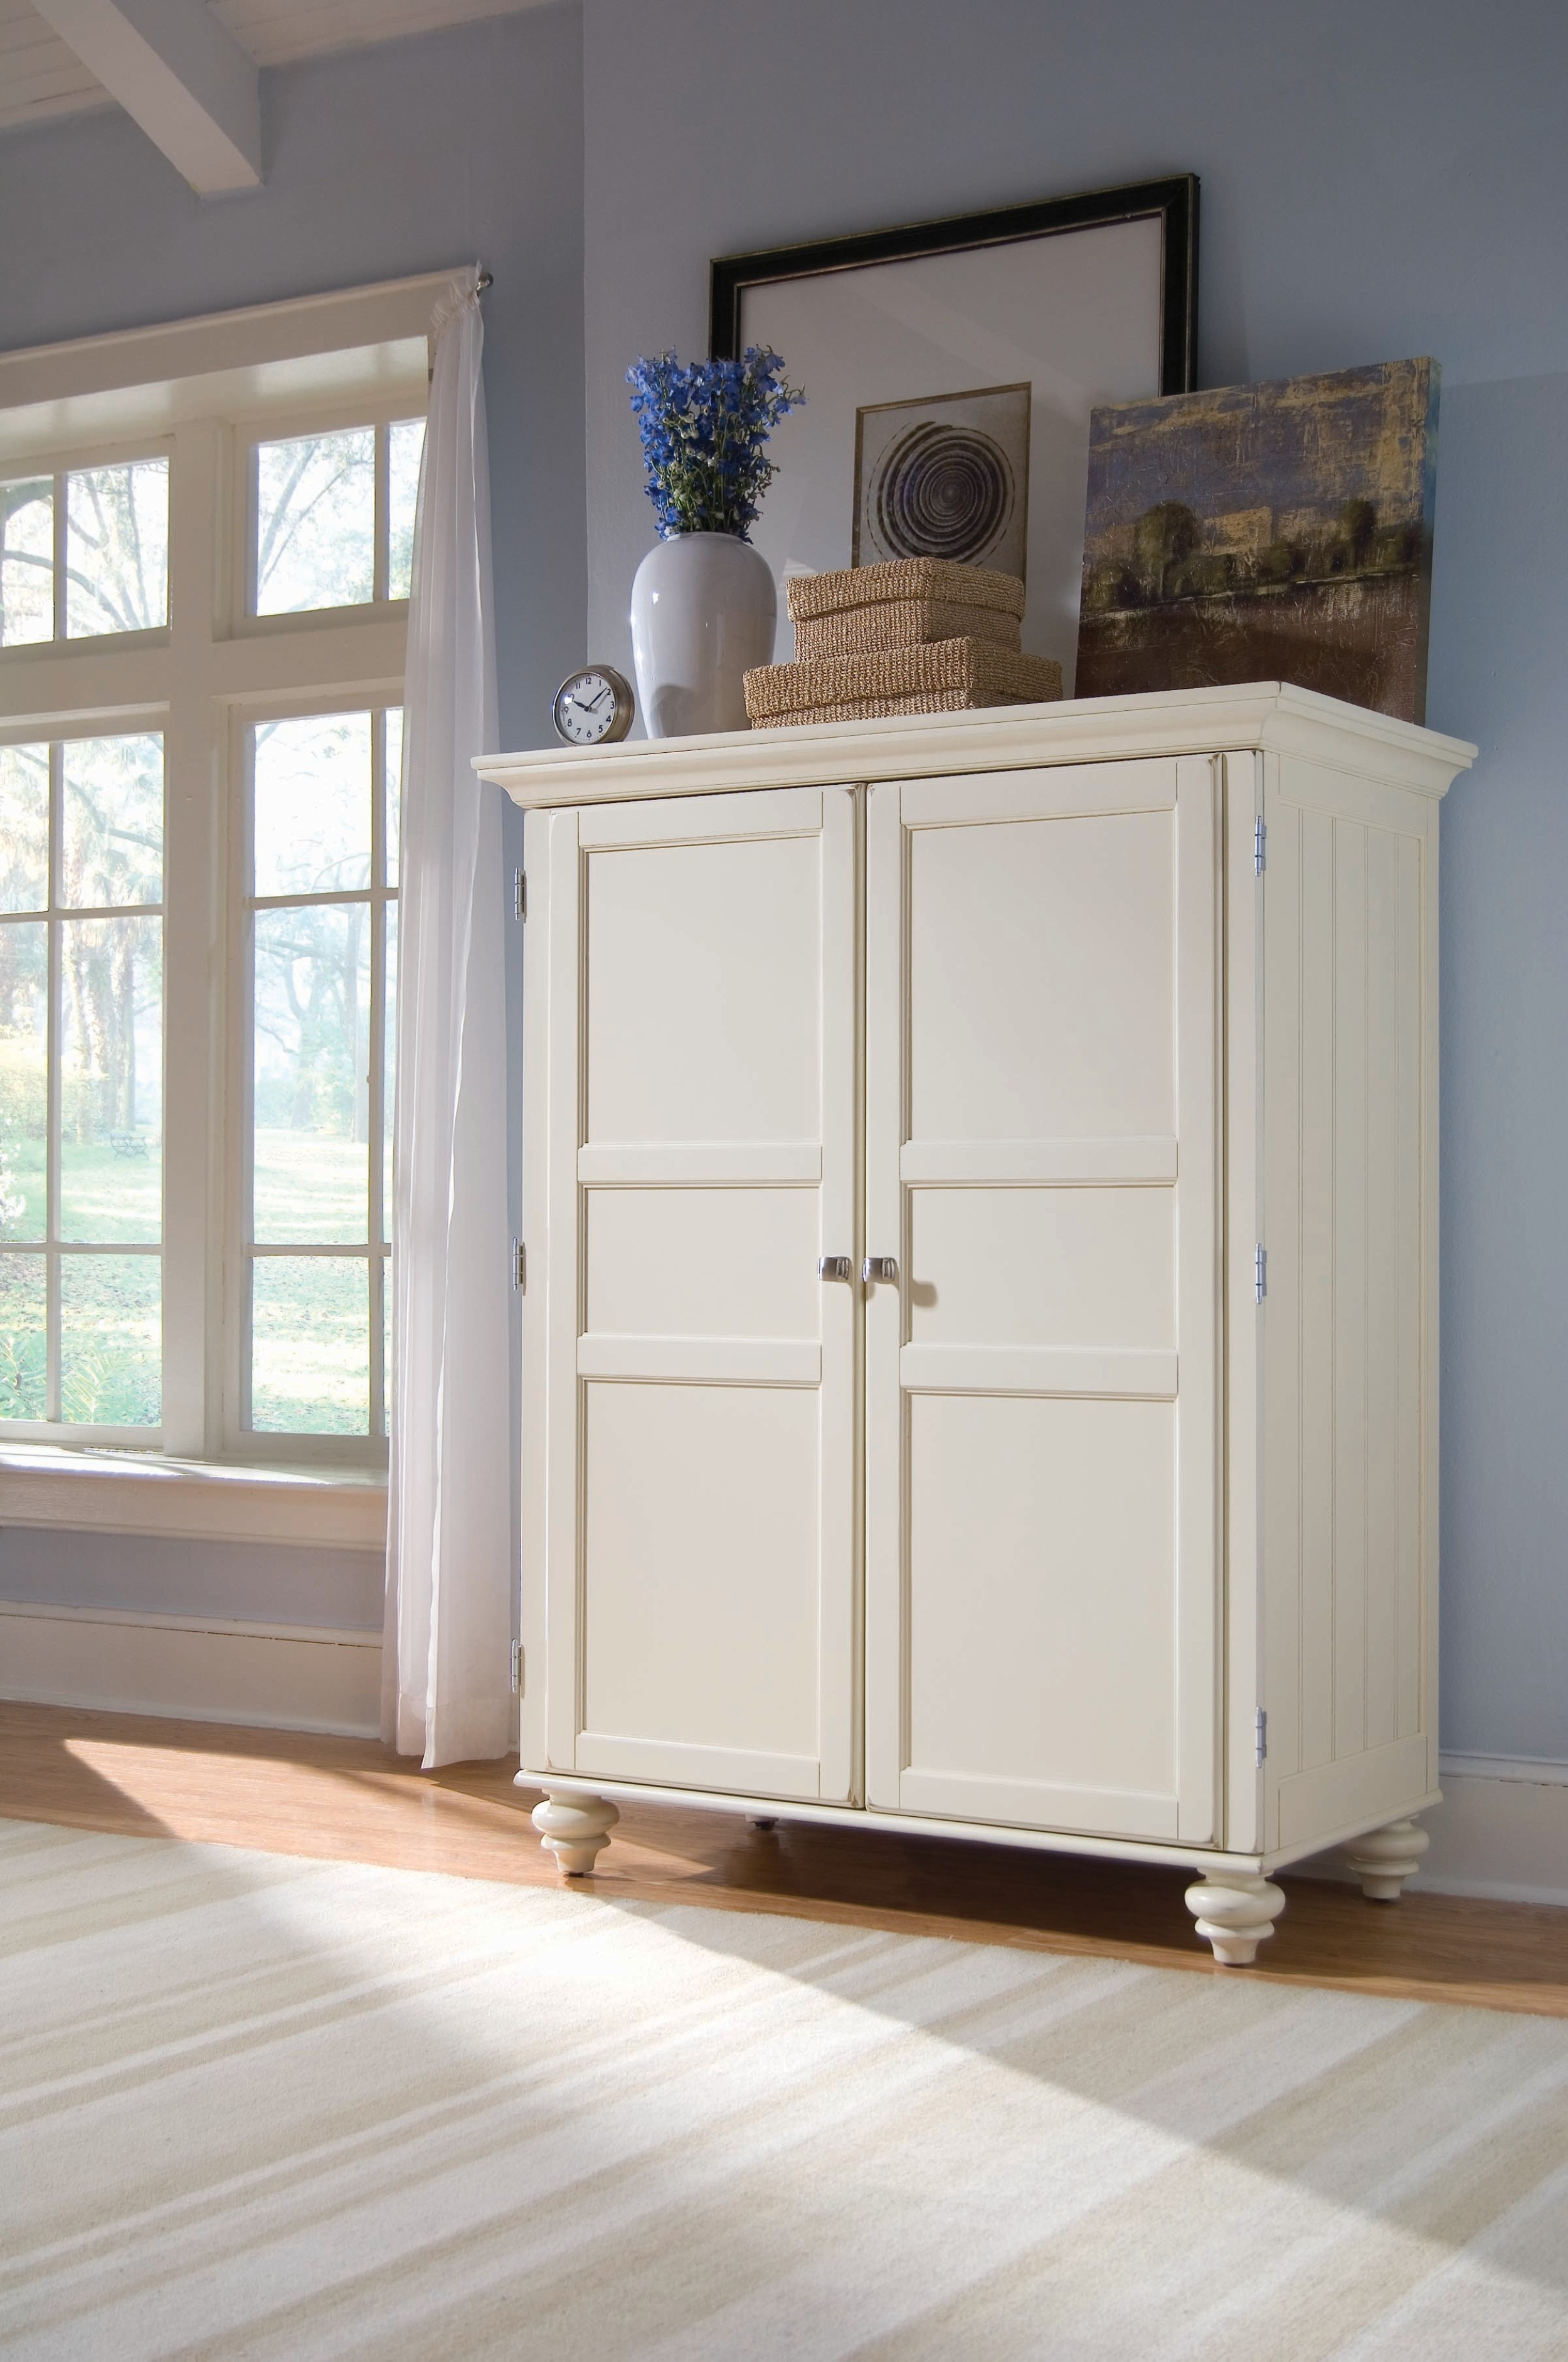 Best ideas about Bedroom Storage Cabinets . Save or Pin Bedroom Cabinets Storage Storage Cabinet For fice Now.